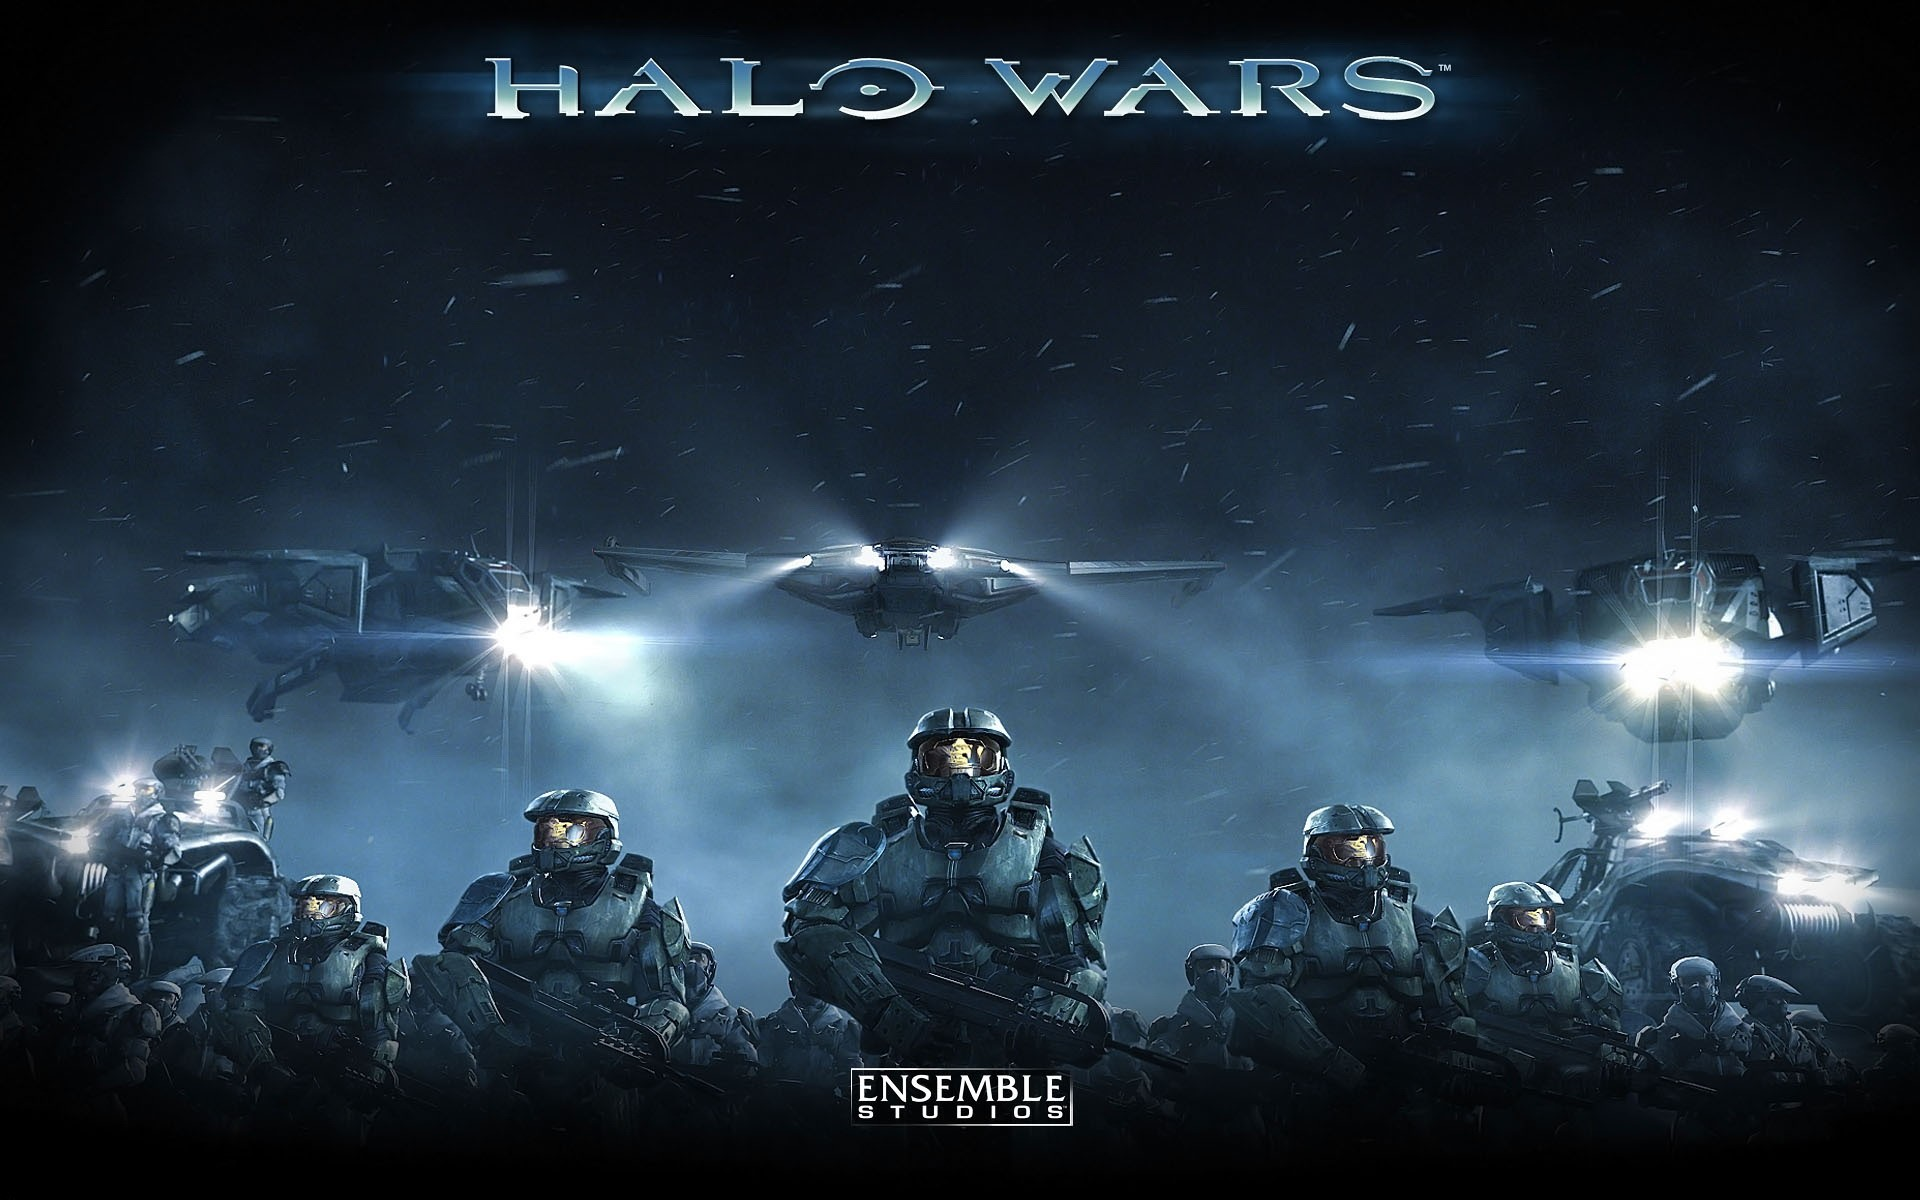 Hd Apple Wallpapers Iphone X Halo Wars Game Wallpapers Hd Wallpapers Id 8082